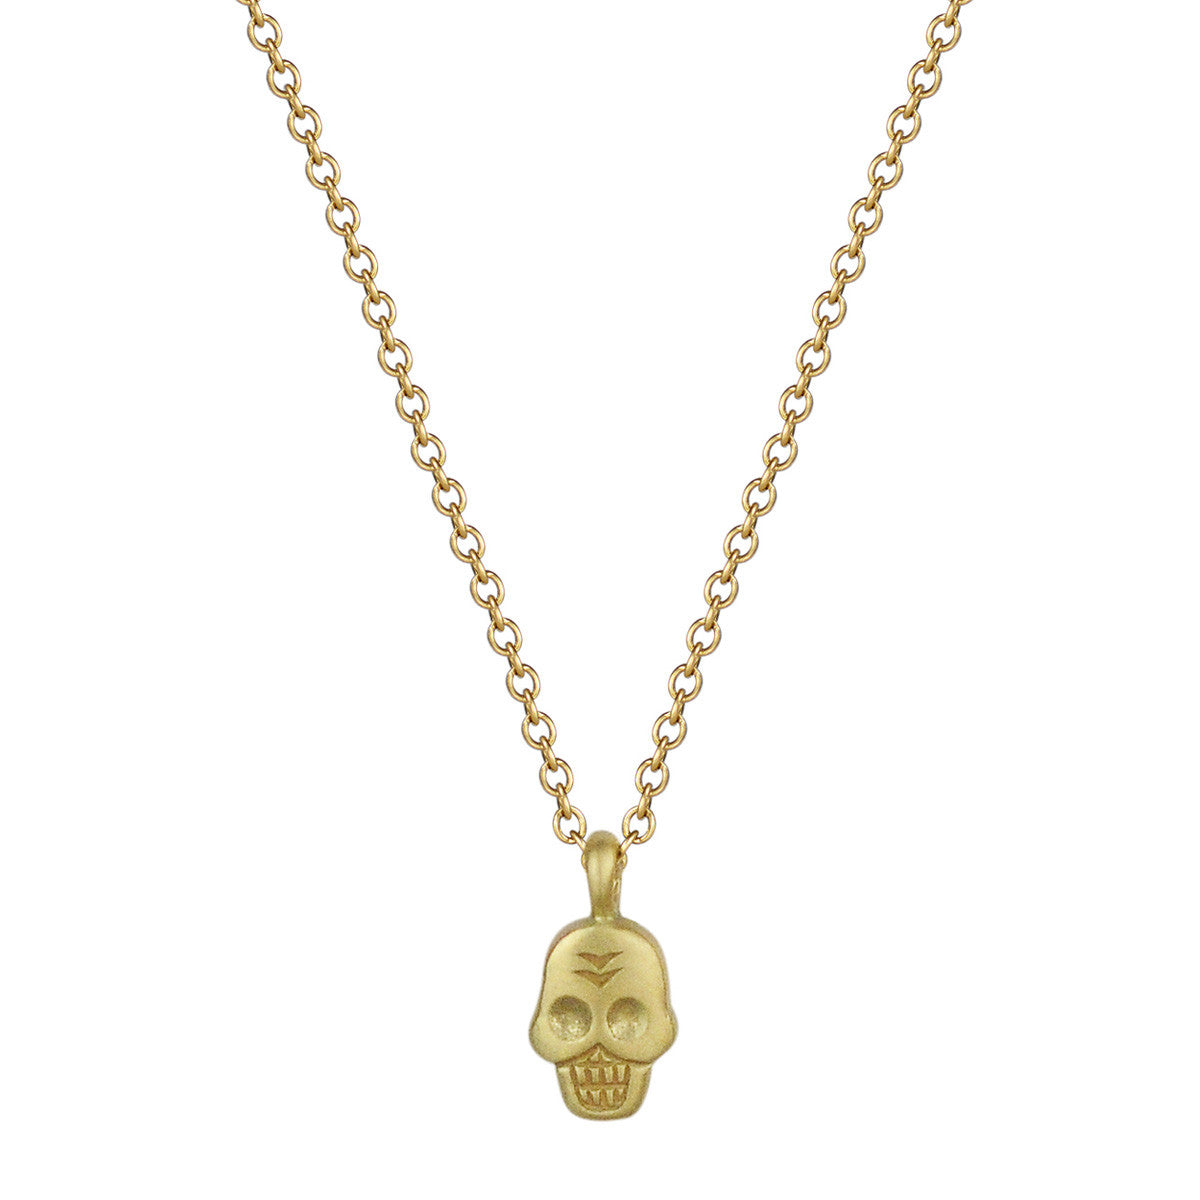 18K Gold Mini Skull Pendant